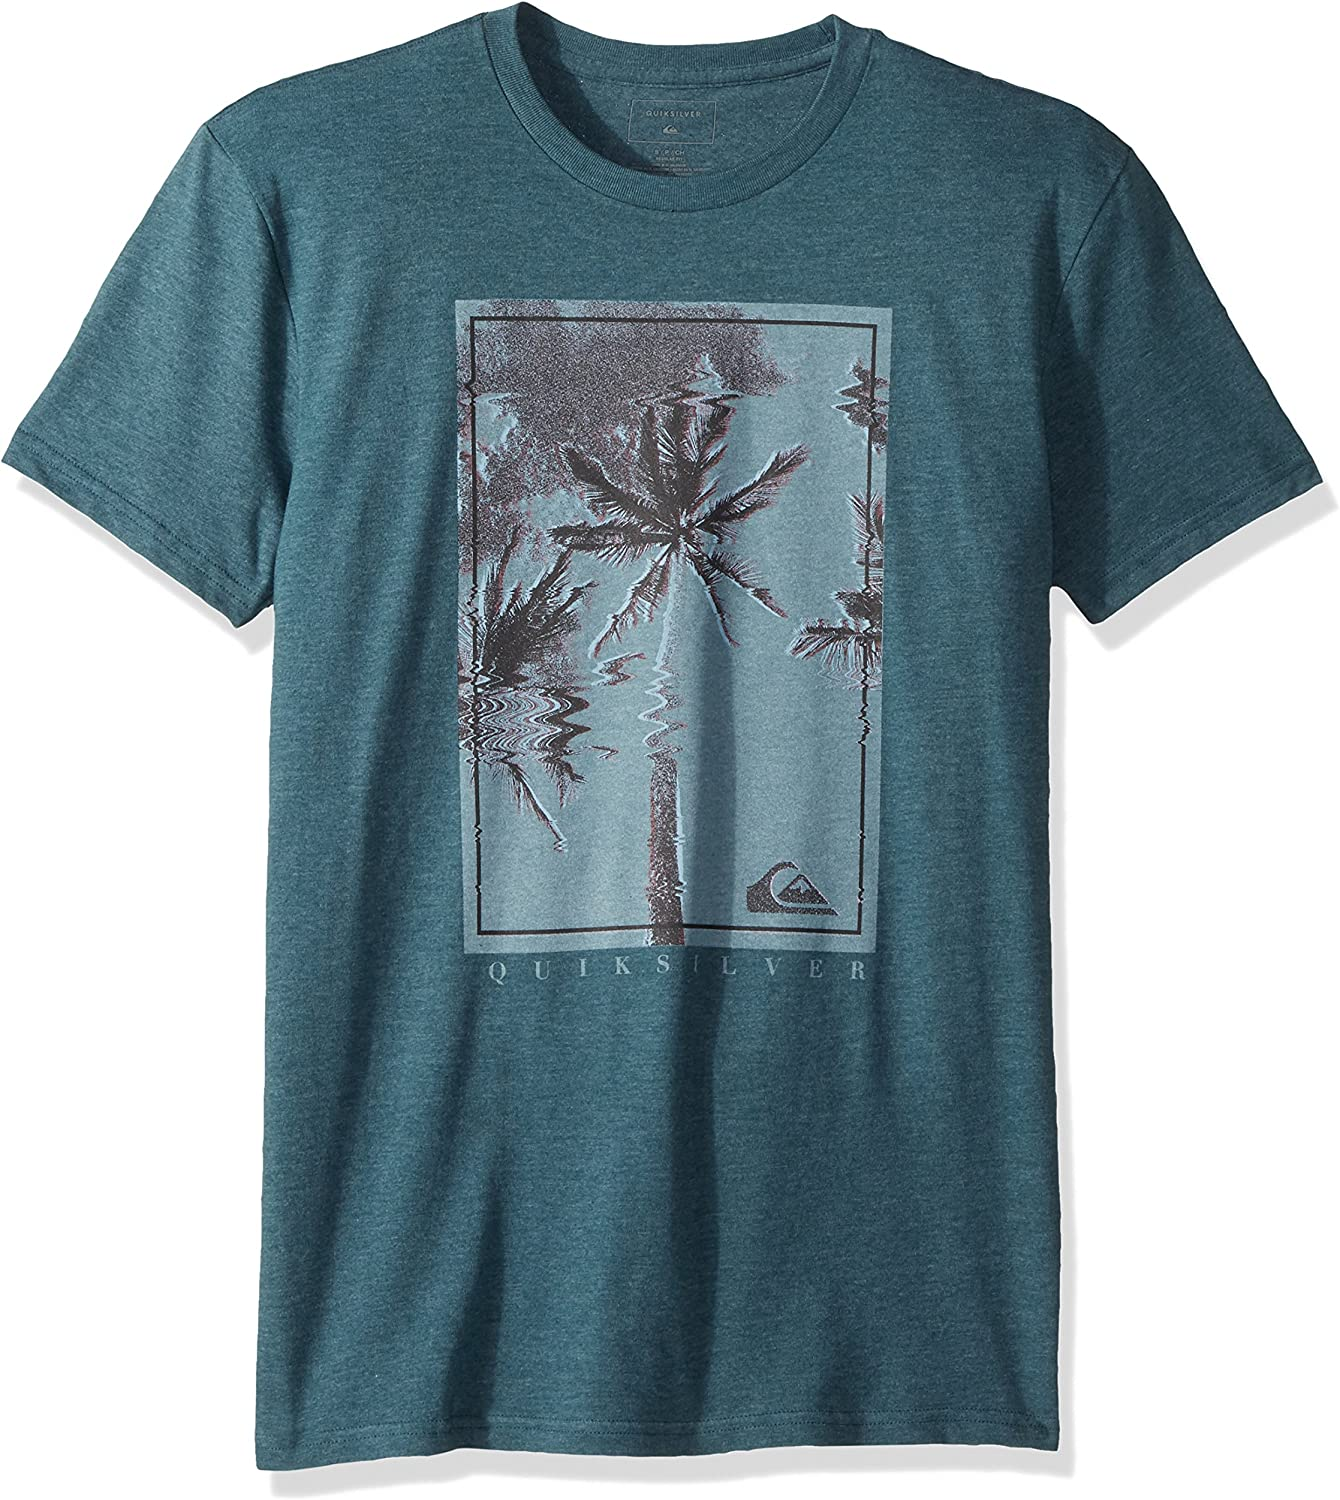 Quiksilver Mens Palm Shock Tee Shirt